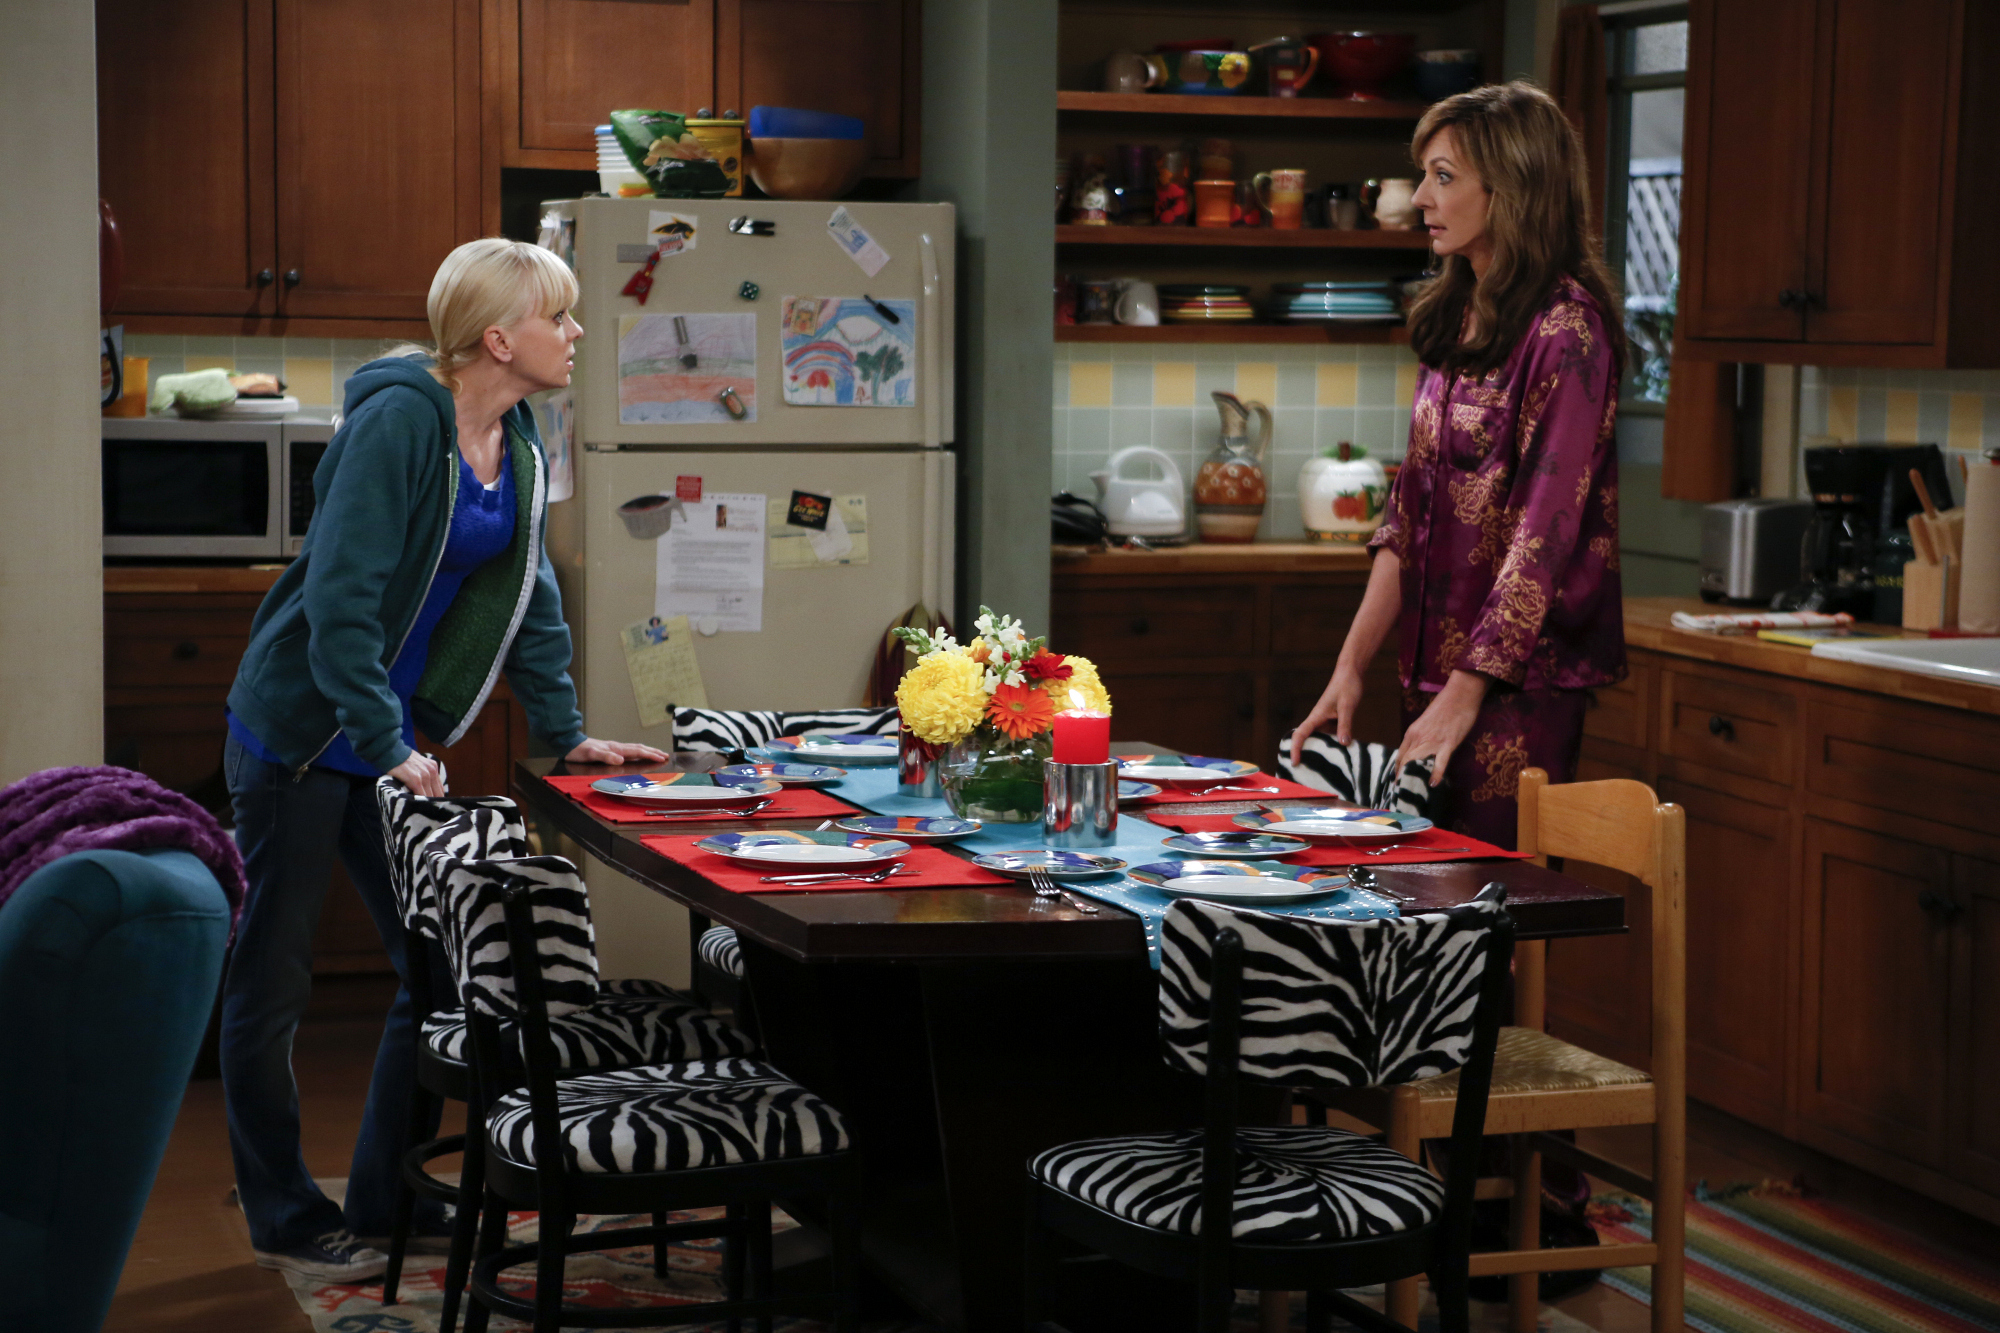 """New kitchen decor in """"Belgian Waffles and Bathroom Privileges"""" Episode 10 of Season 1"""